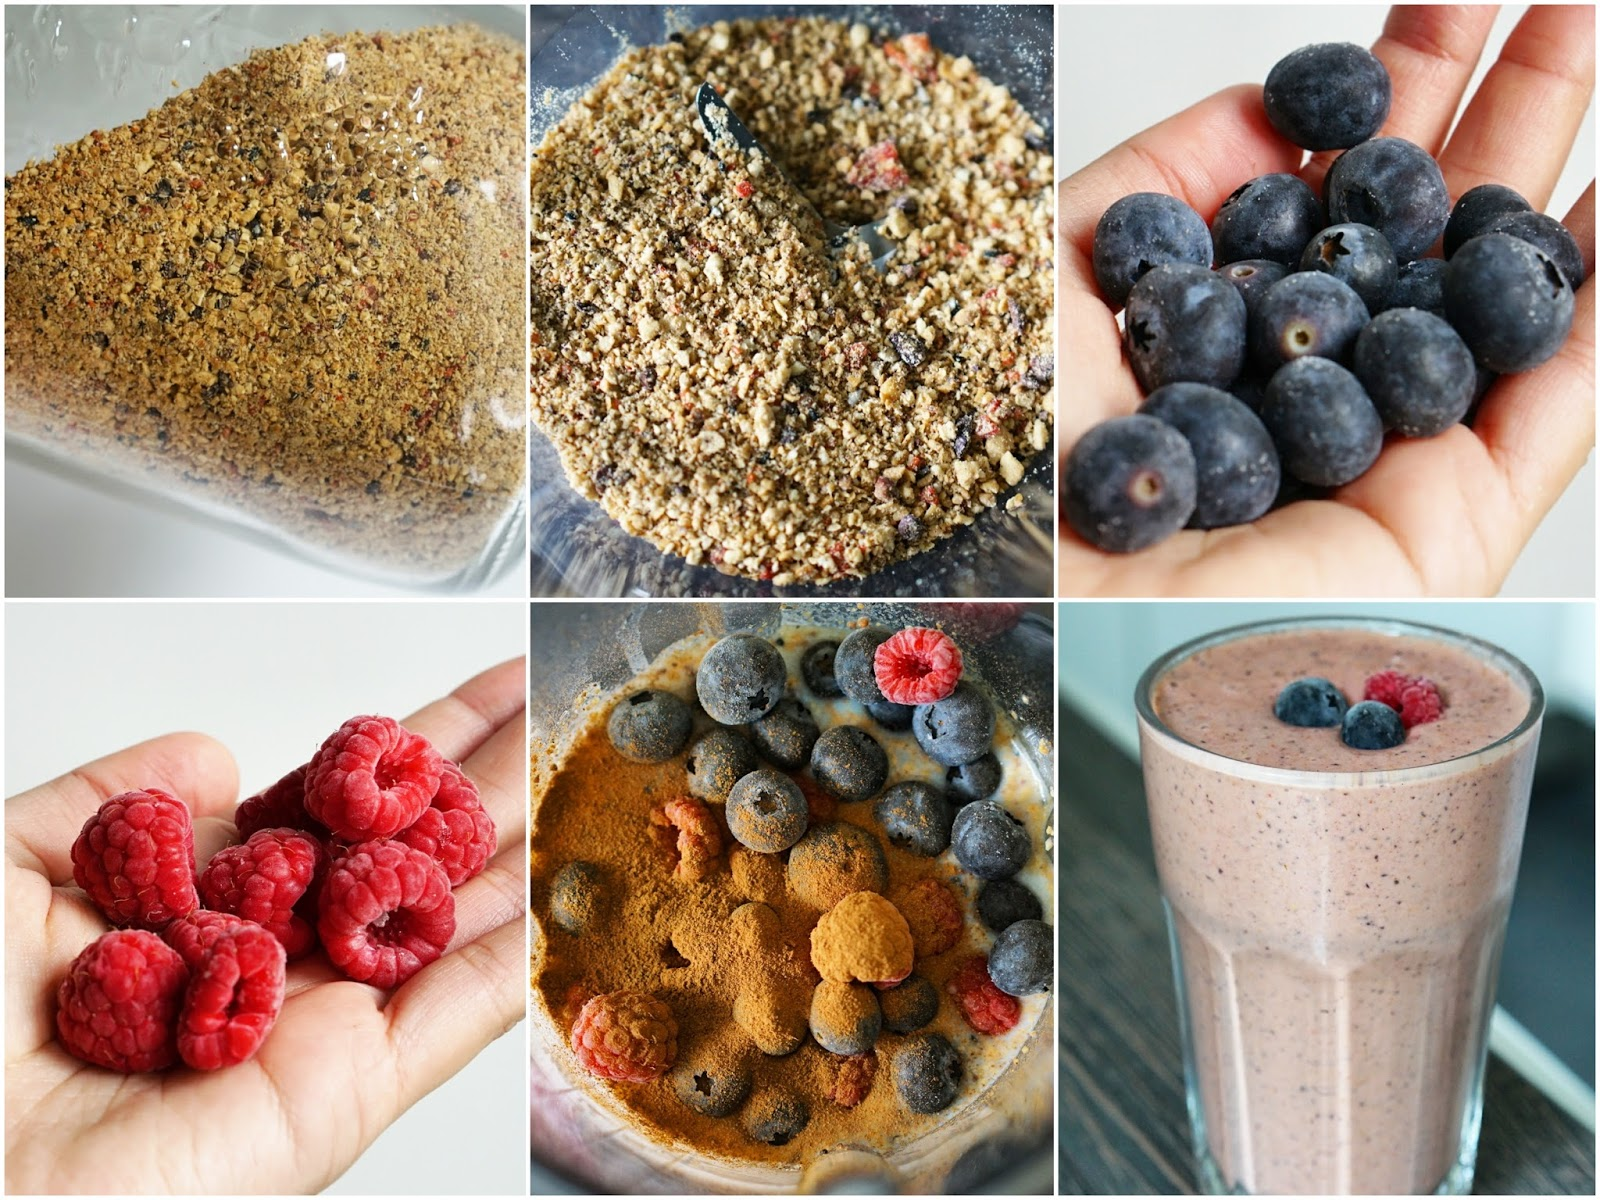 image collage of the different stages of following Jamie Oliver's granola dust breakfast recipe and making it into a smoothie